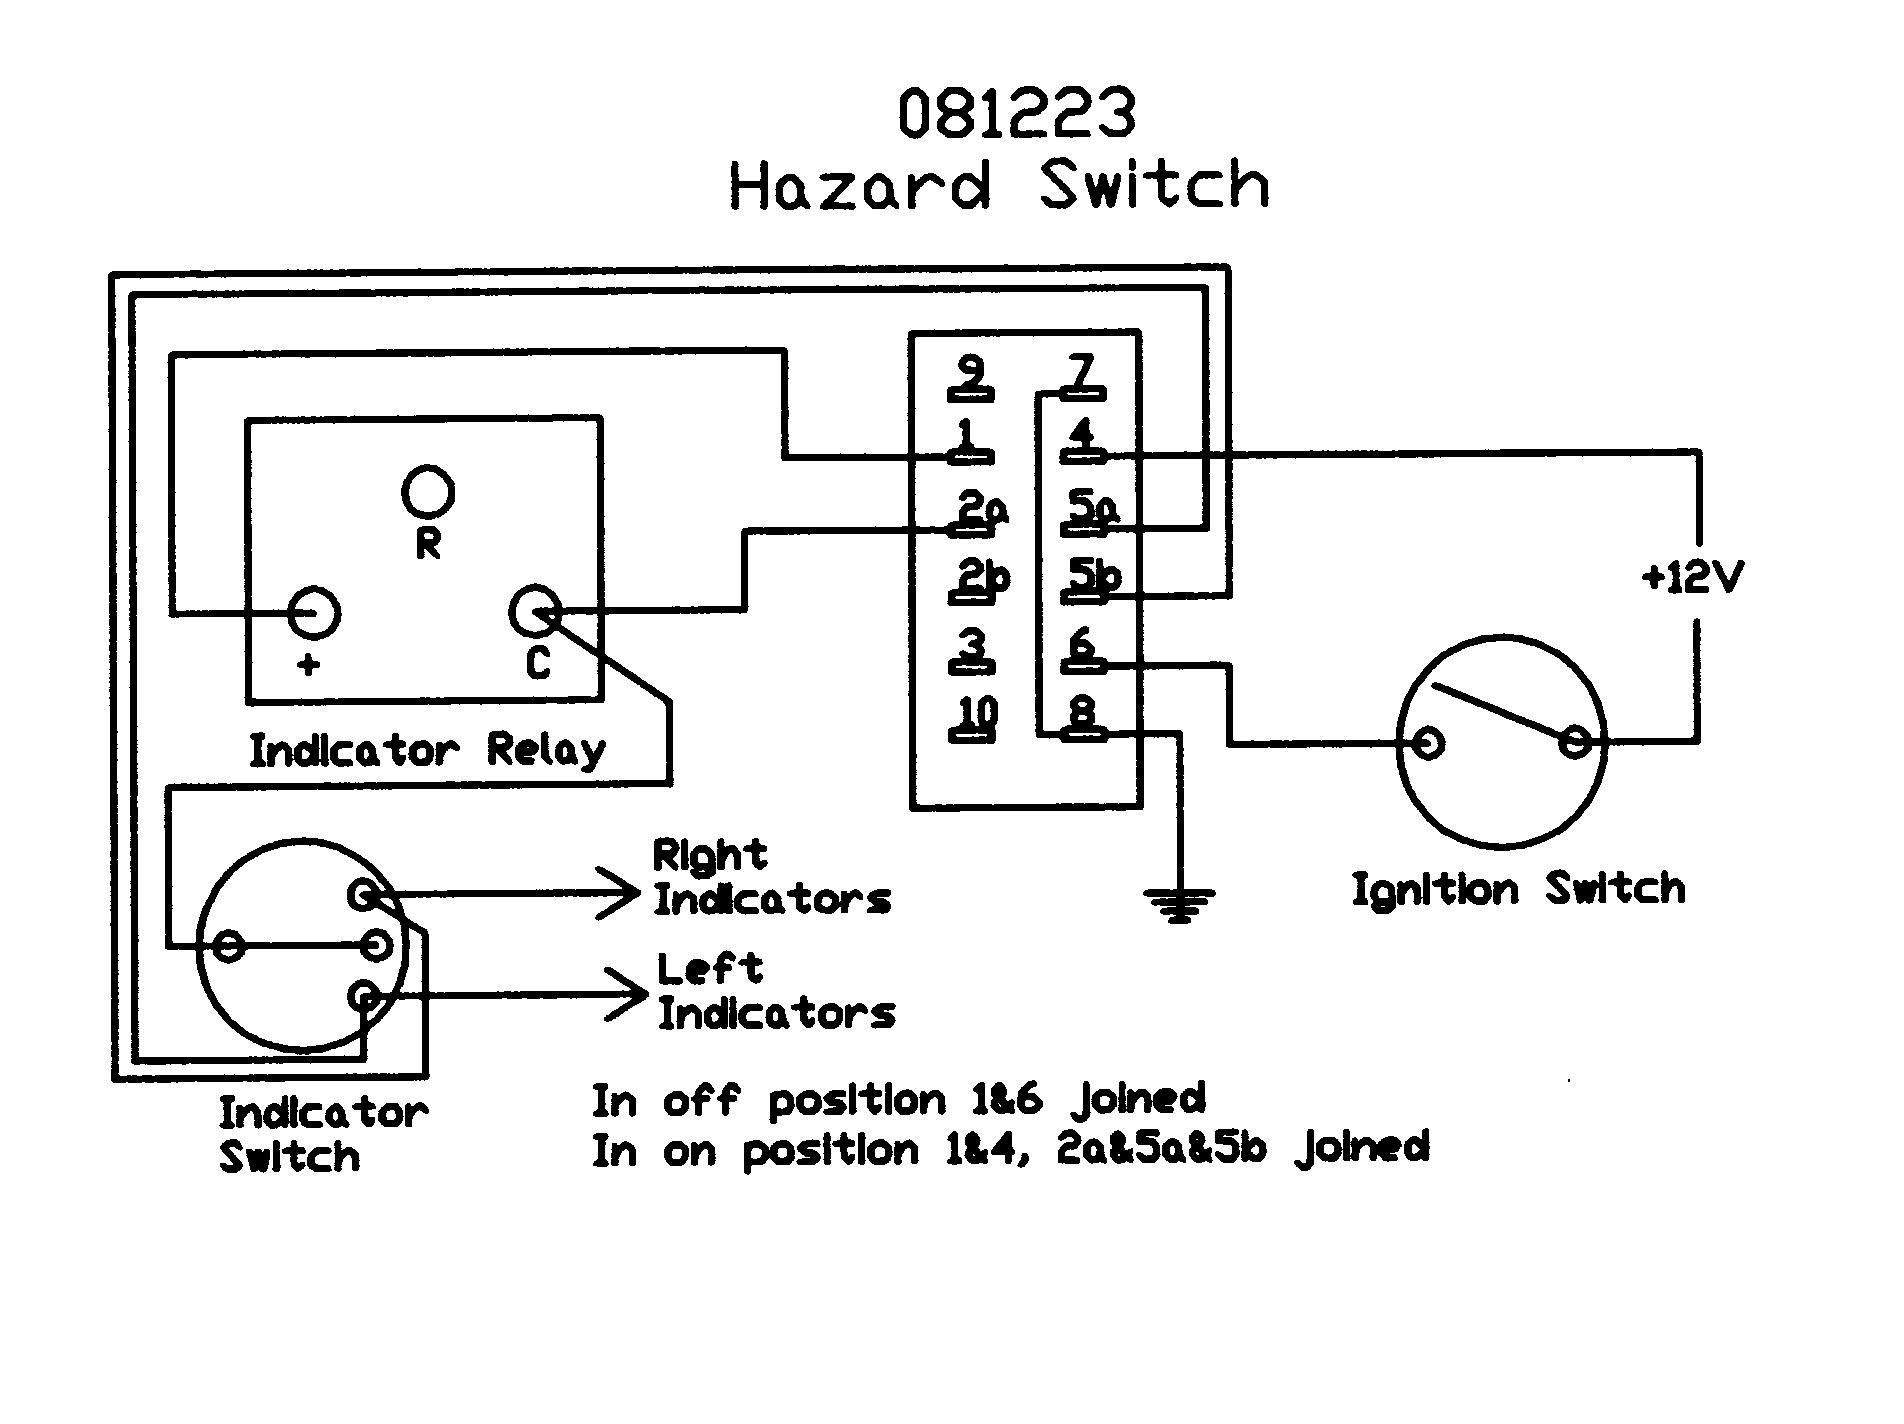 12 Volt Isolator Wiring Diagram Will Be A Thing For Battery Rocker Hazard Switch Boat Dual